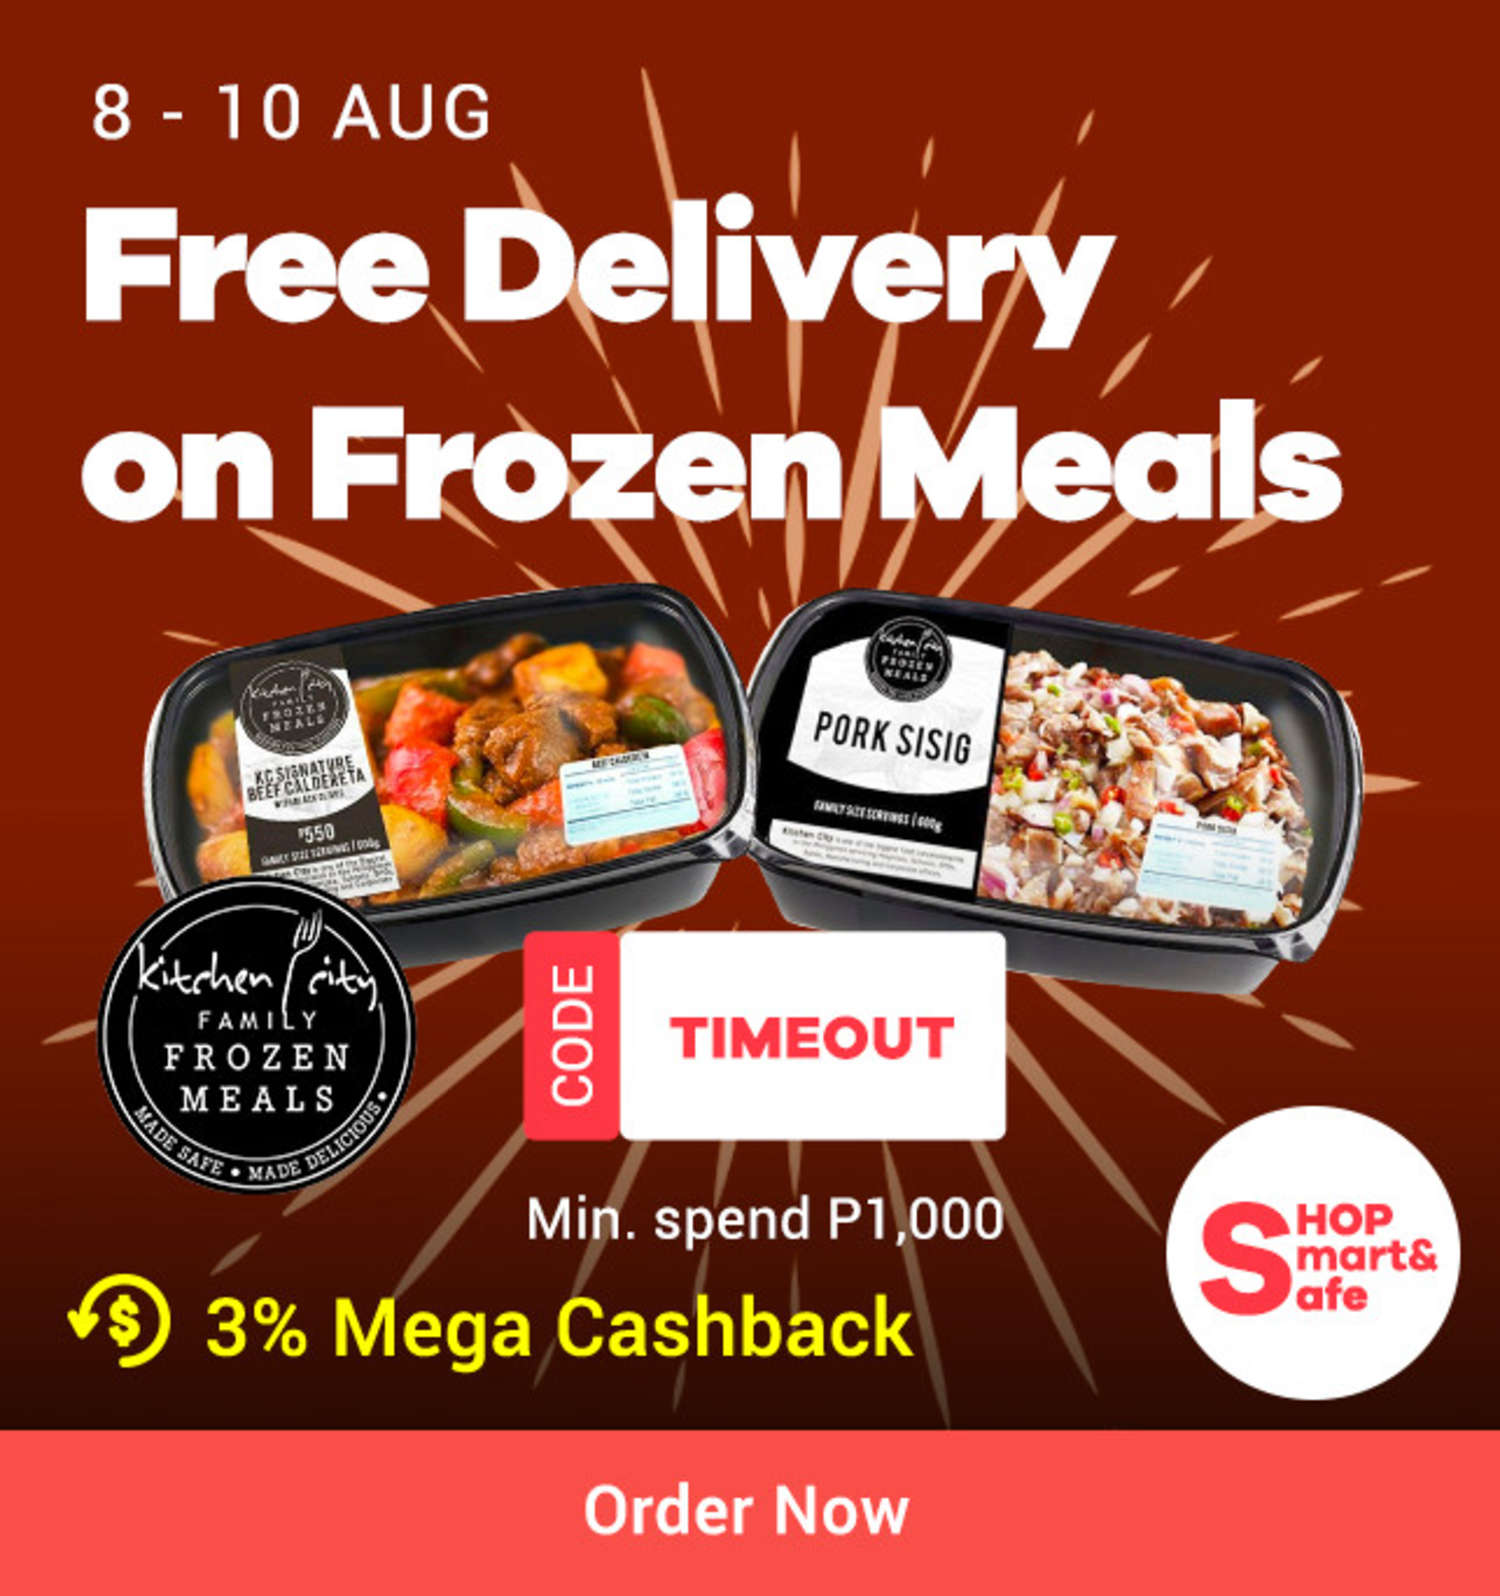 Kitchen City: Free Delivery on Frozen Meals